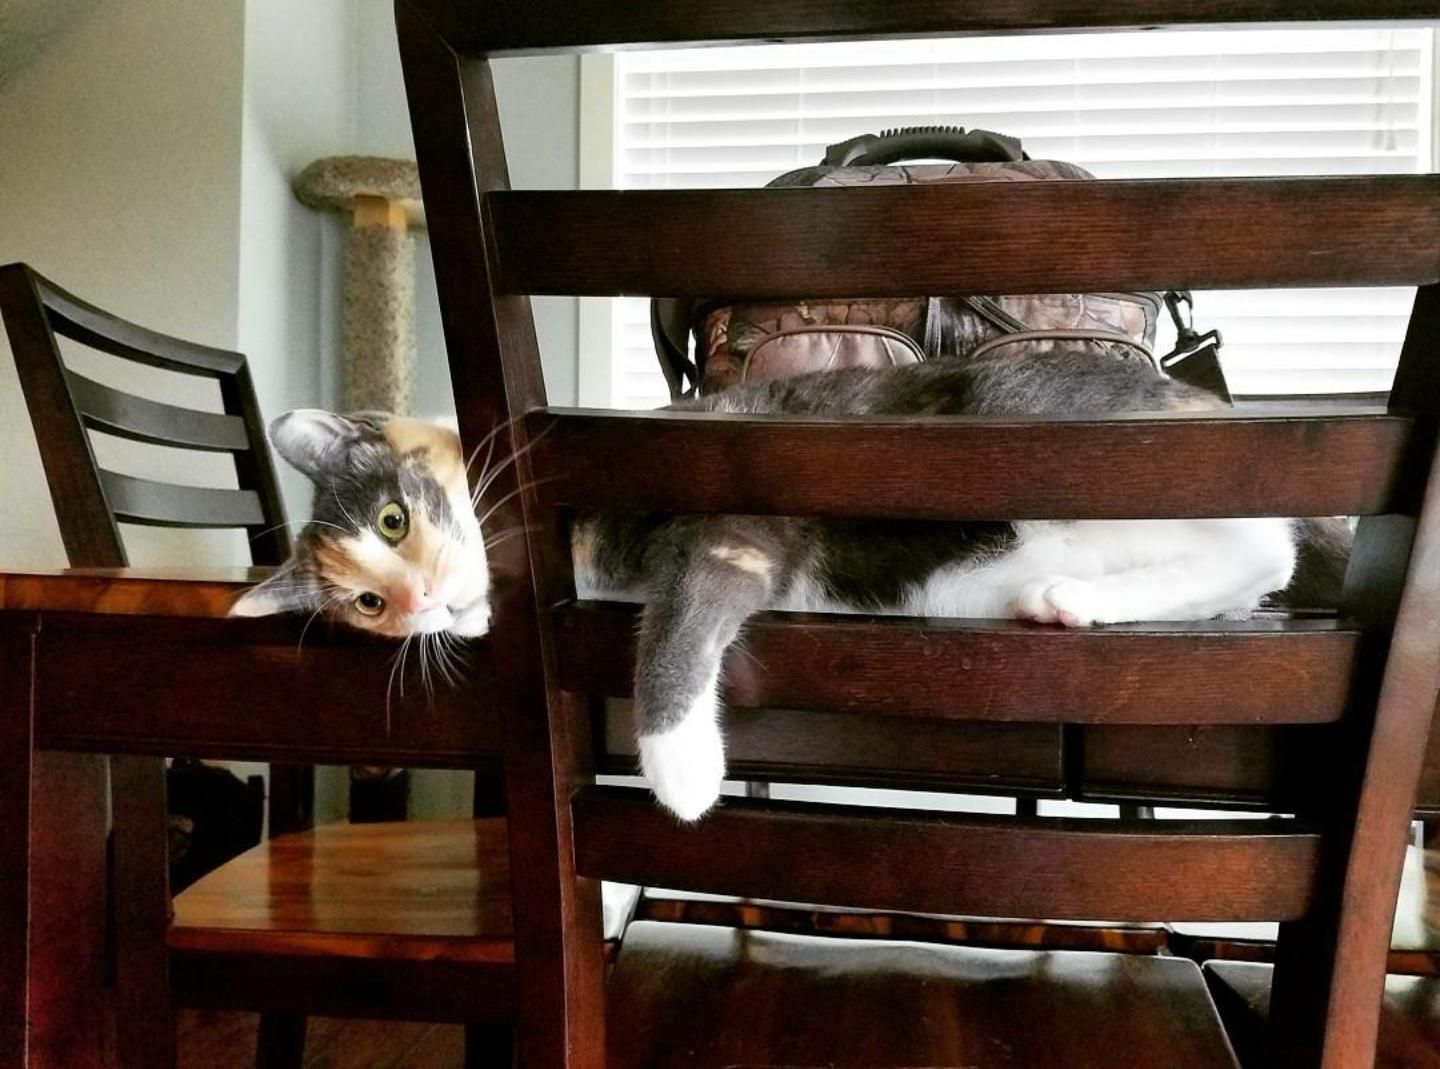 Don't mind me. Just gonna hang out here & slap everyone who walks by.   http://ift.tt/1TPR09s via /r/cats http://ift.tt/1TsKeXu  cats funny pictures